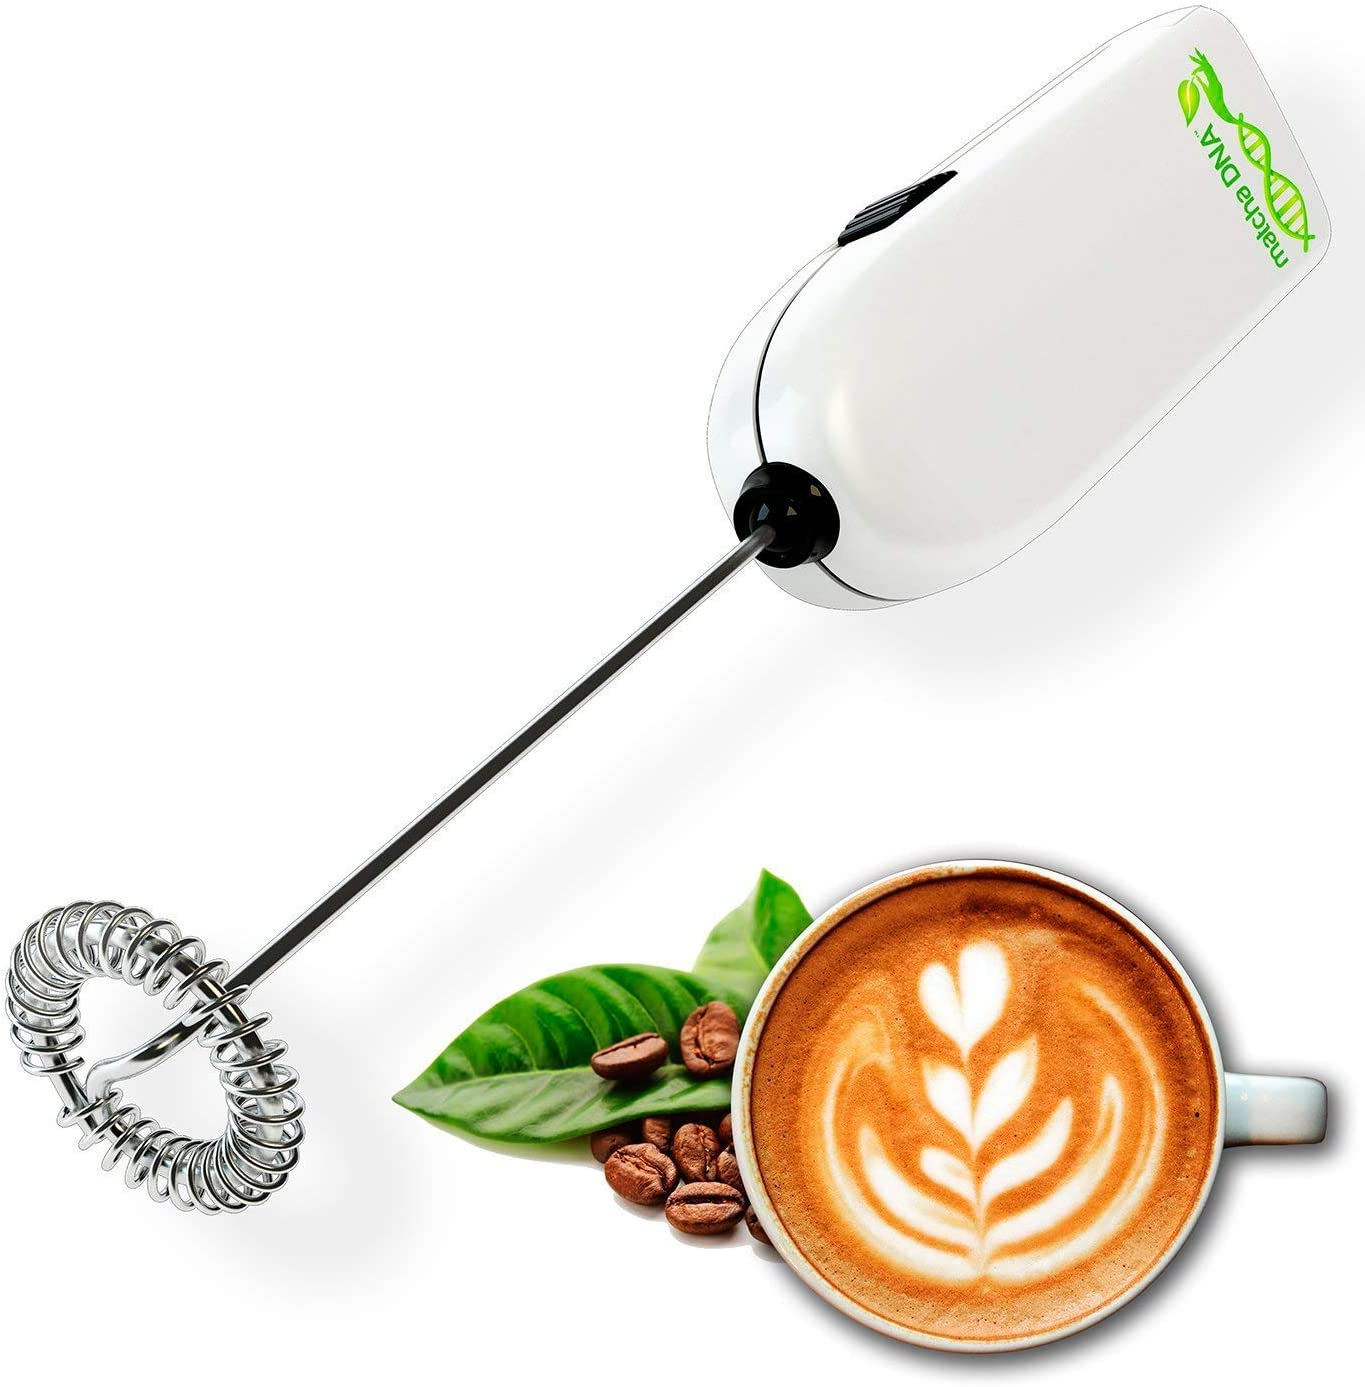 MatchaDNA Milk Frother - Handheld Battery Operated Electric Foam Maker For Bulletproof Coffee, Lattes, Cappuccino, Hot Chocolate, Sleek Drink Mixer ((Round Tip Model 2) (Silver 1 Pack)